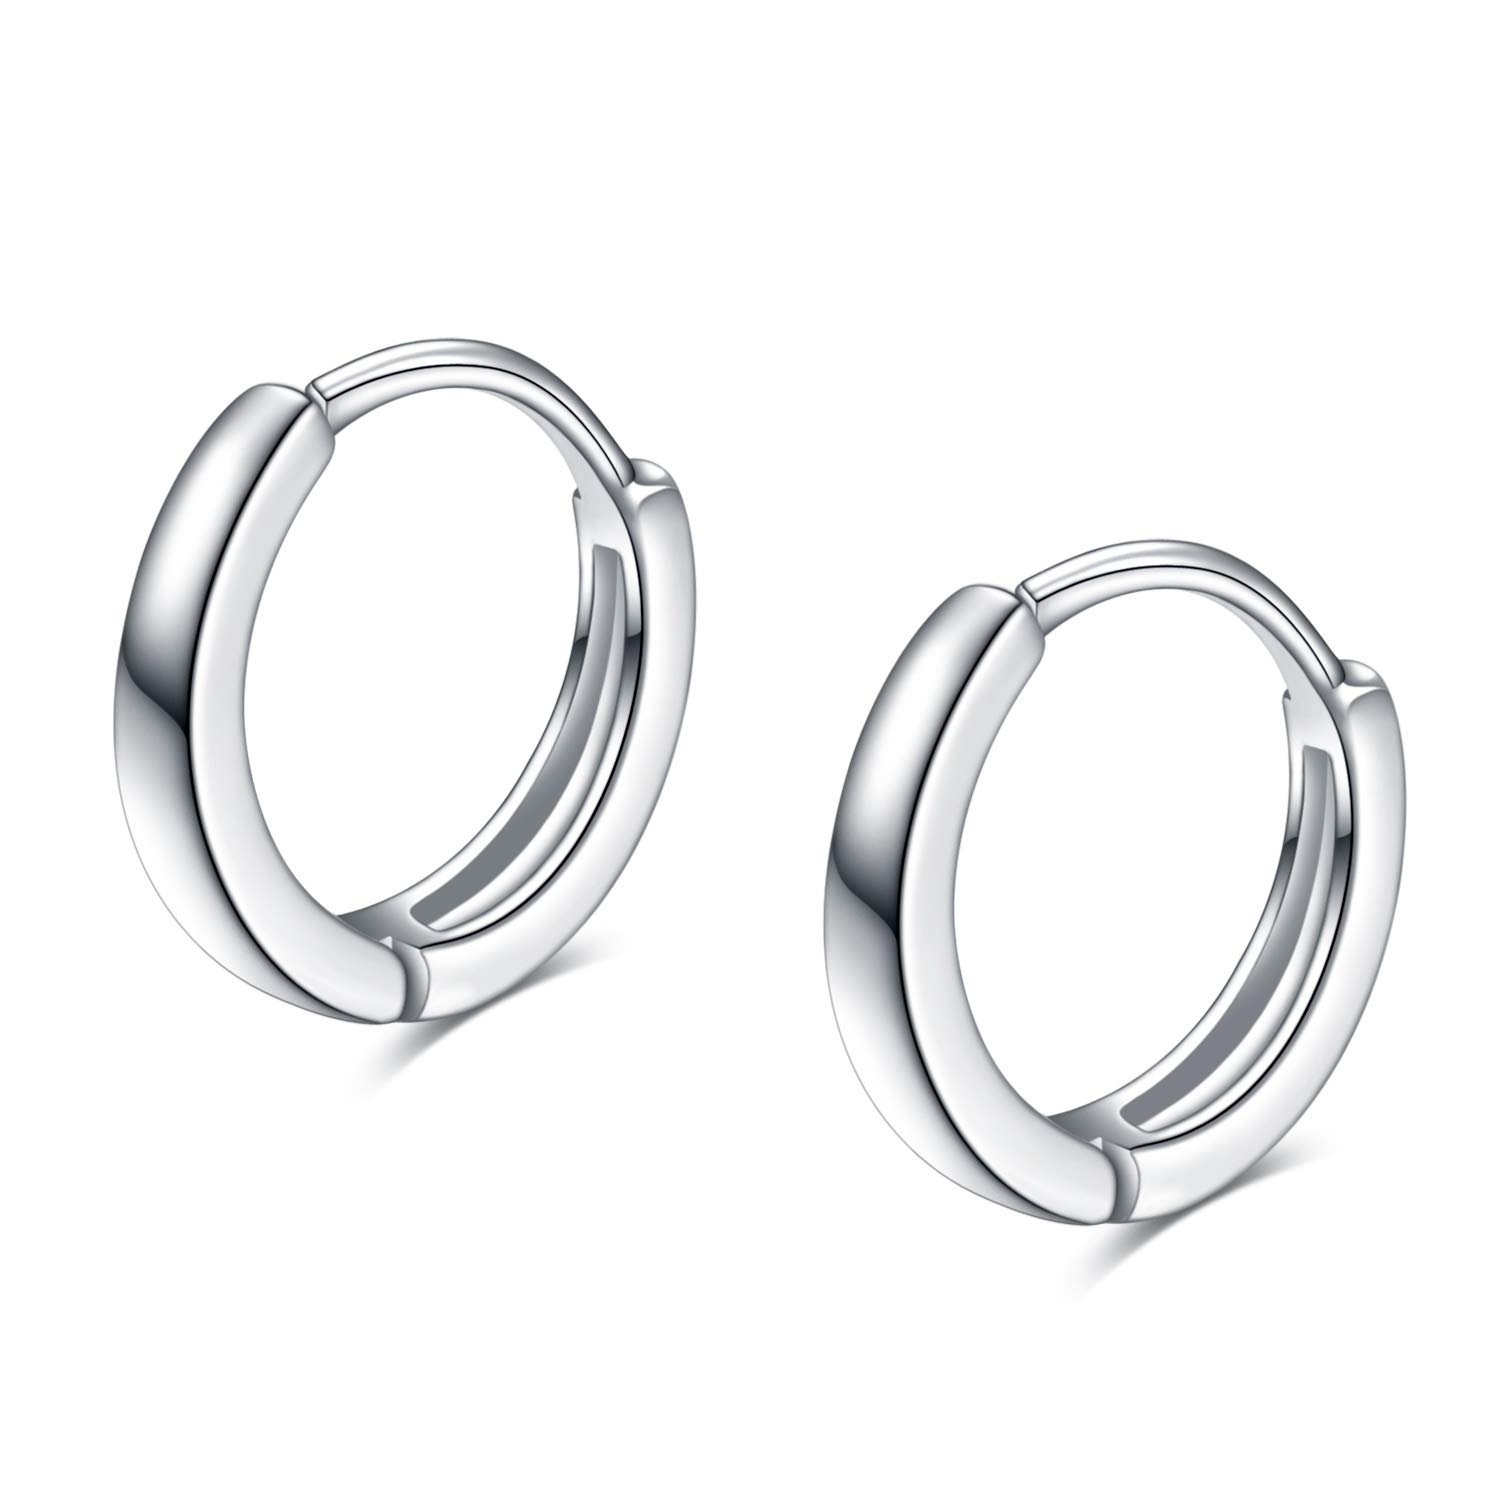 YFN Sterling Silver Cartilage Hoop Hypoallergenic Tiny Small Earrings for Women Teen Girls (Silver)